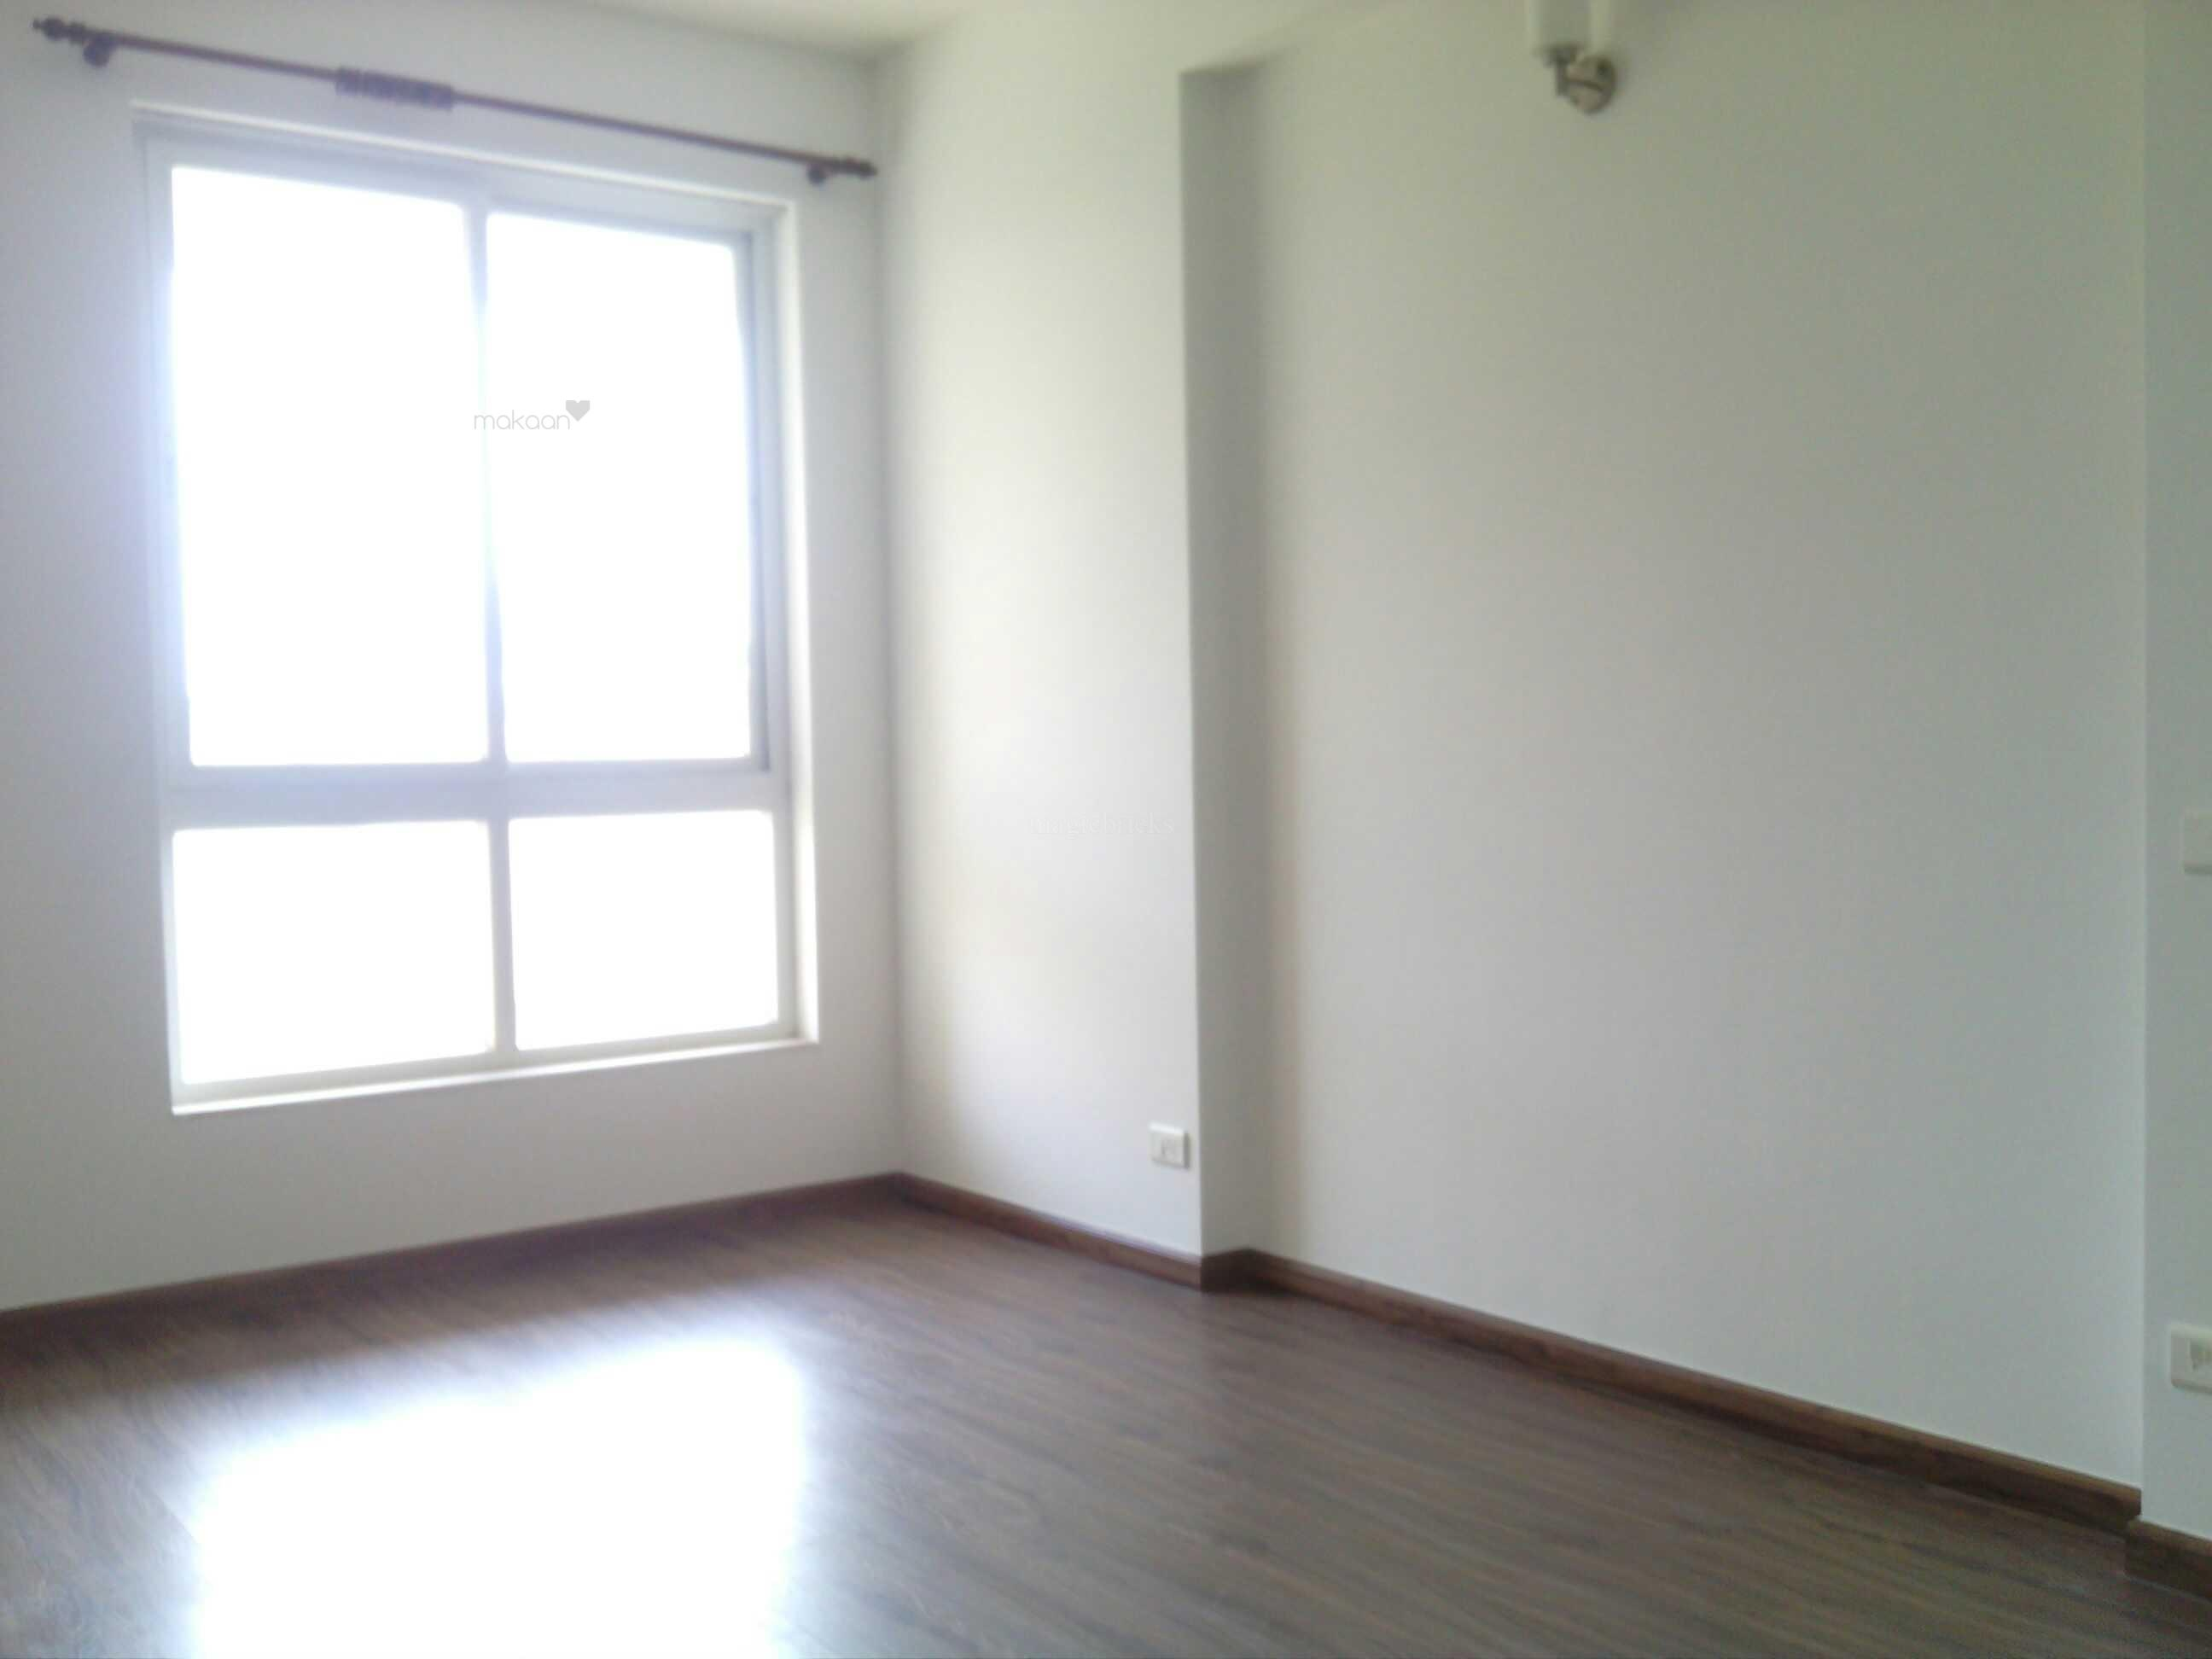 800 sq ft 1BHK 1BHK+1T (800 sq ft) Property By Shree Radha and Company In Colony Old, Sector 14